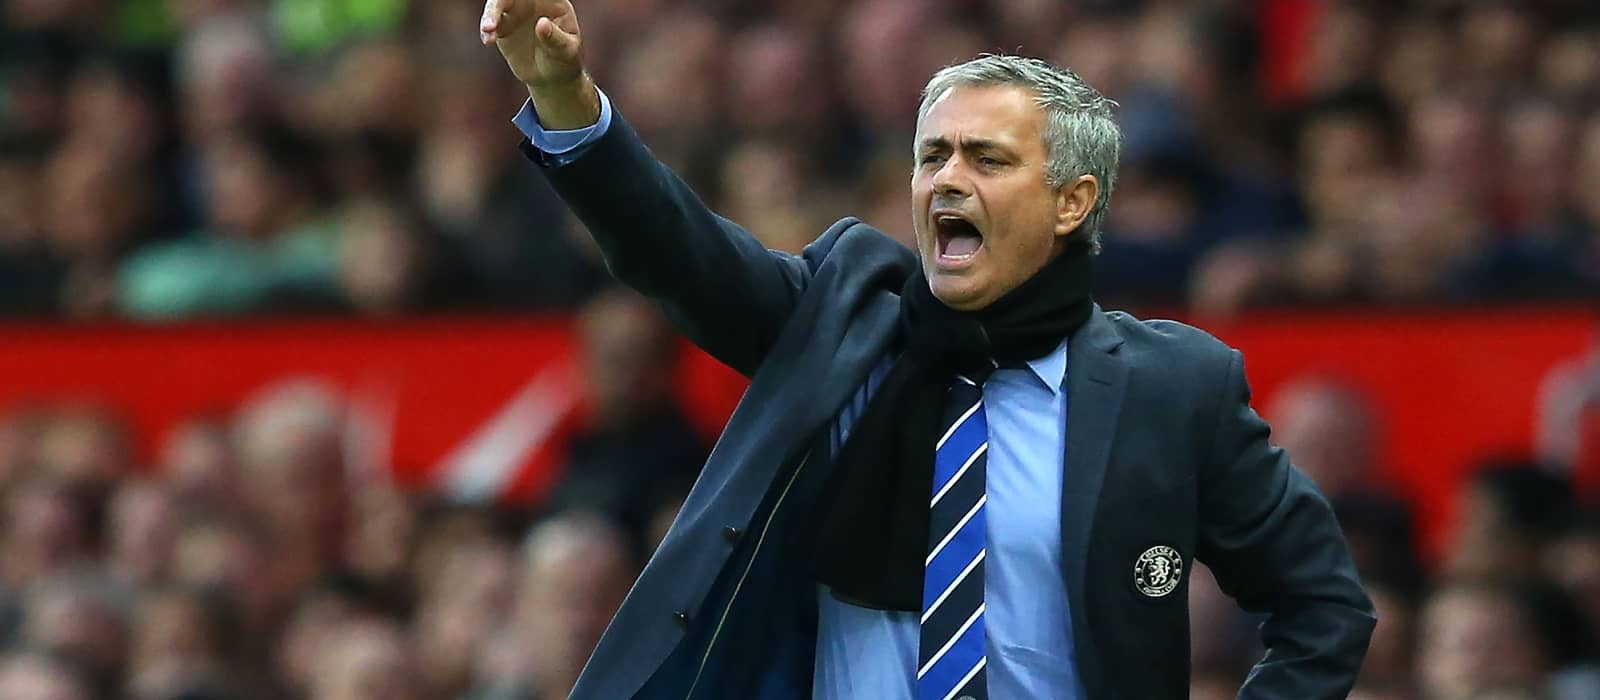 Denis Irwin: Jose Mourinho would respect Man United's philosophy